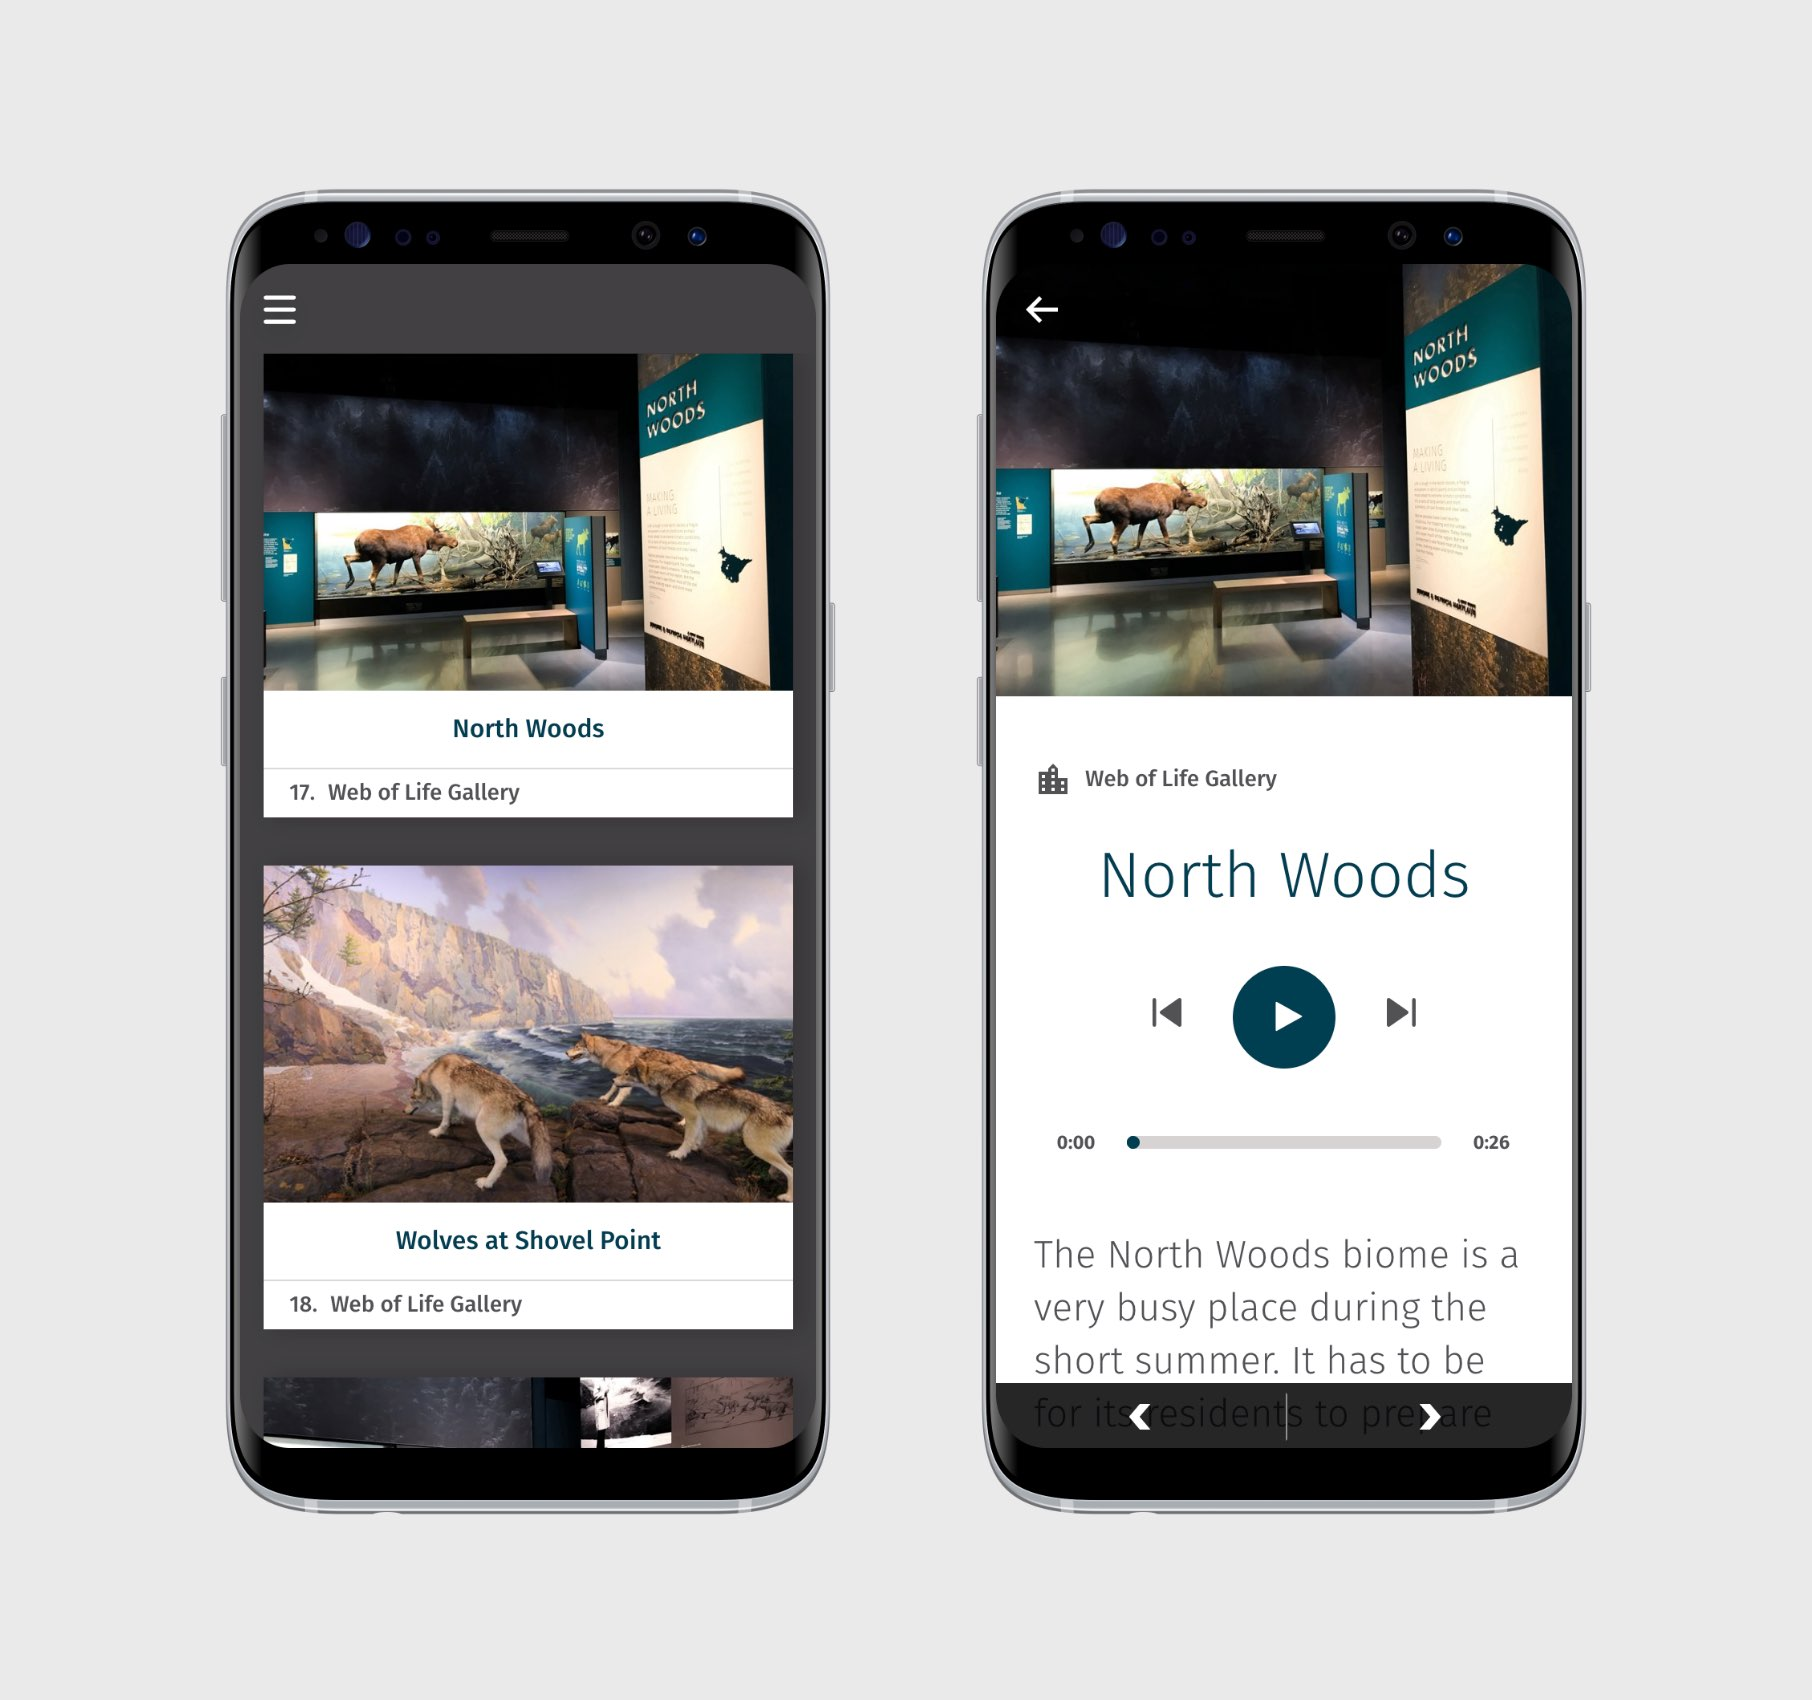 App preview on smartphone: North Woods gallery